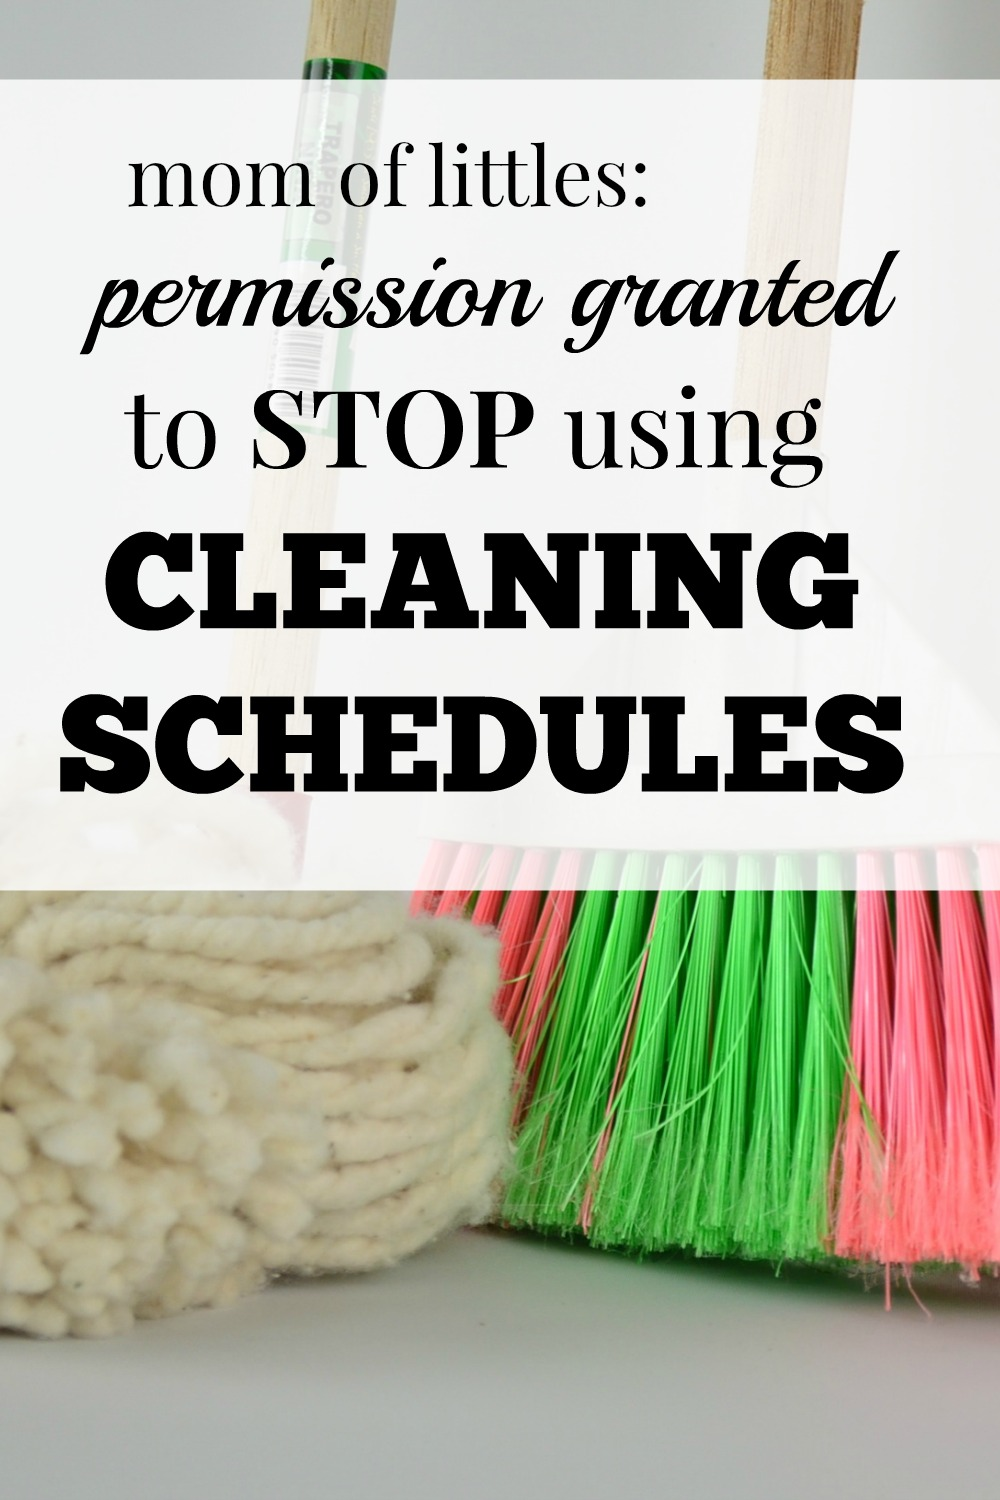 cleaning schedules, should i use a cleaning schedule